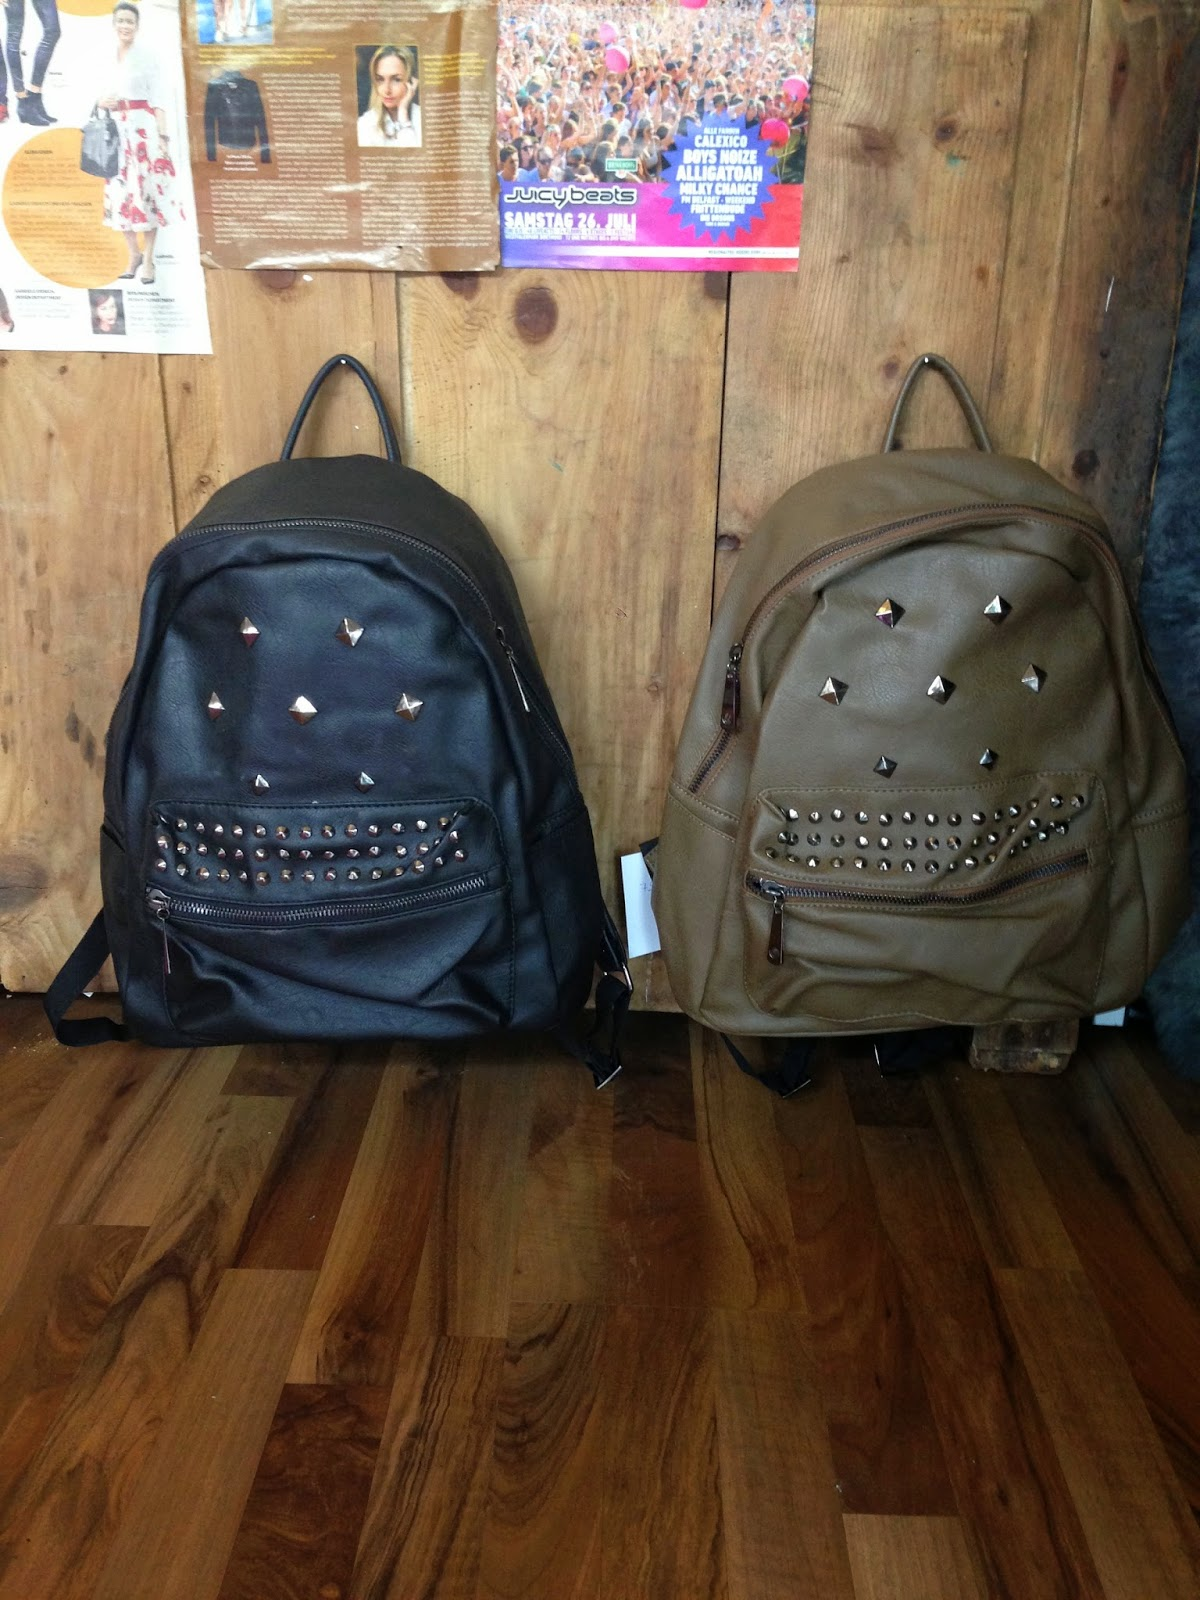 la-parisienne-backpacks